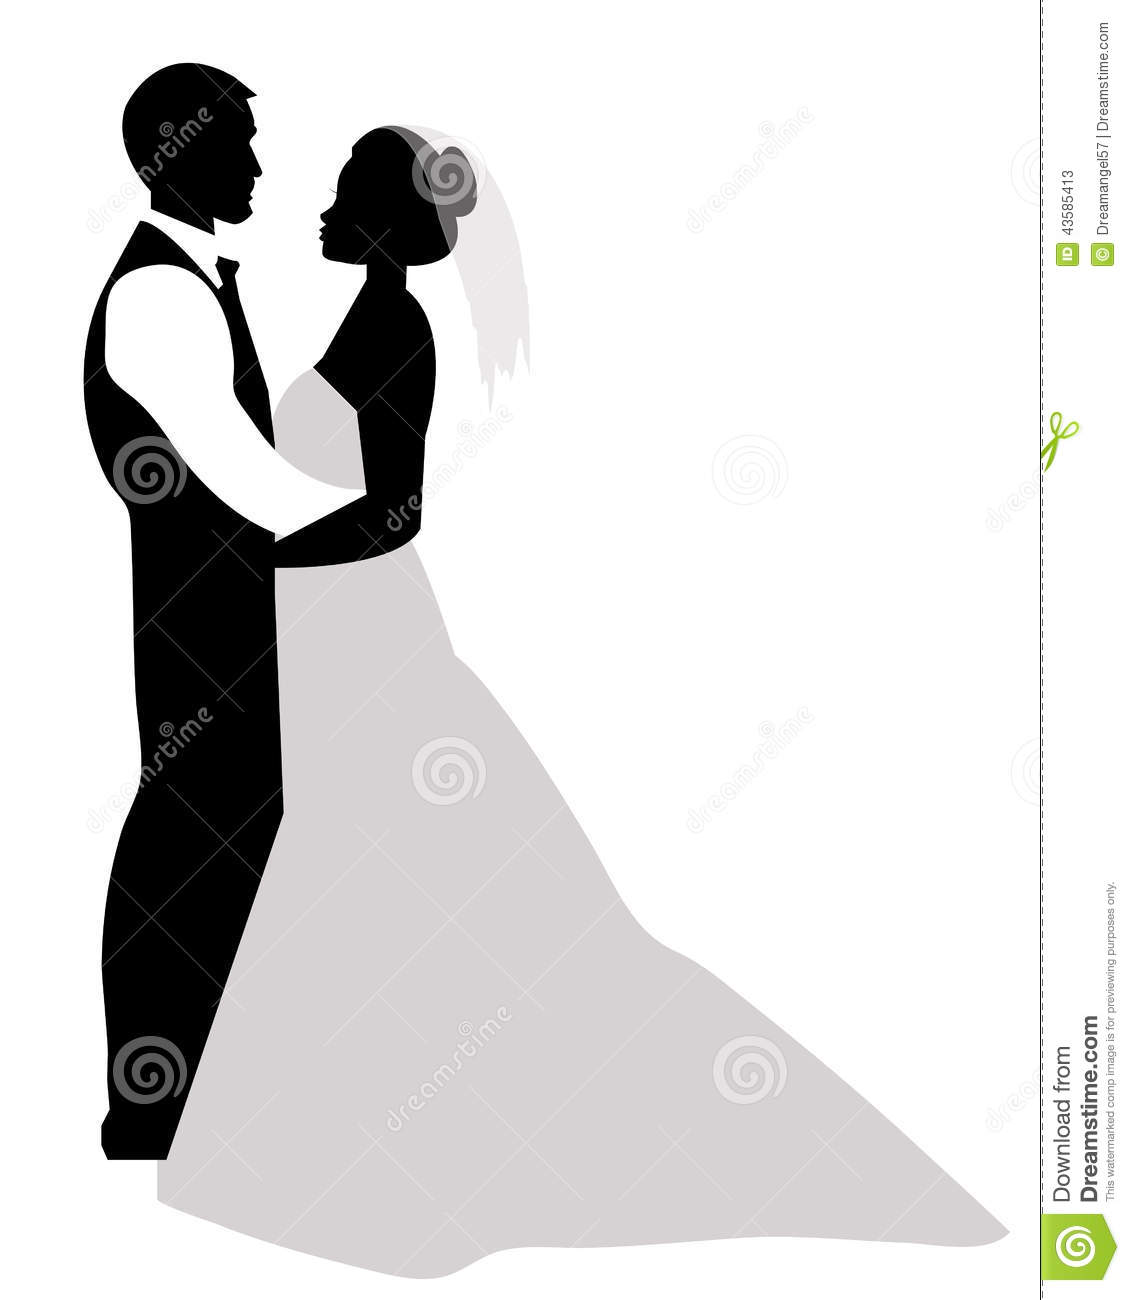 Wedding Couple Silhouette Stock Vector - Image: 43585413